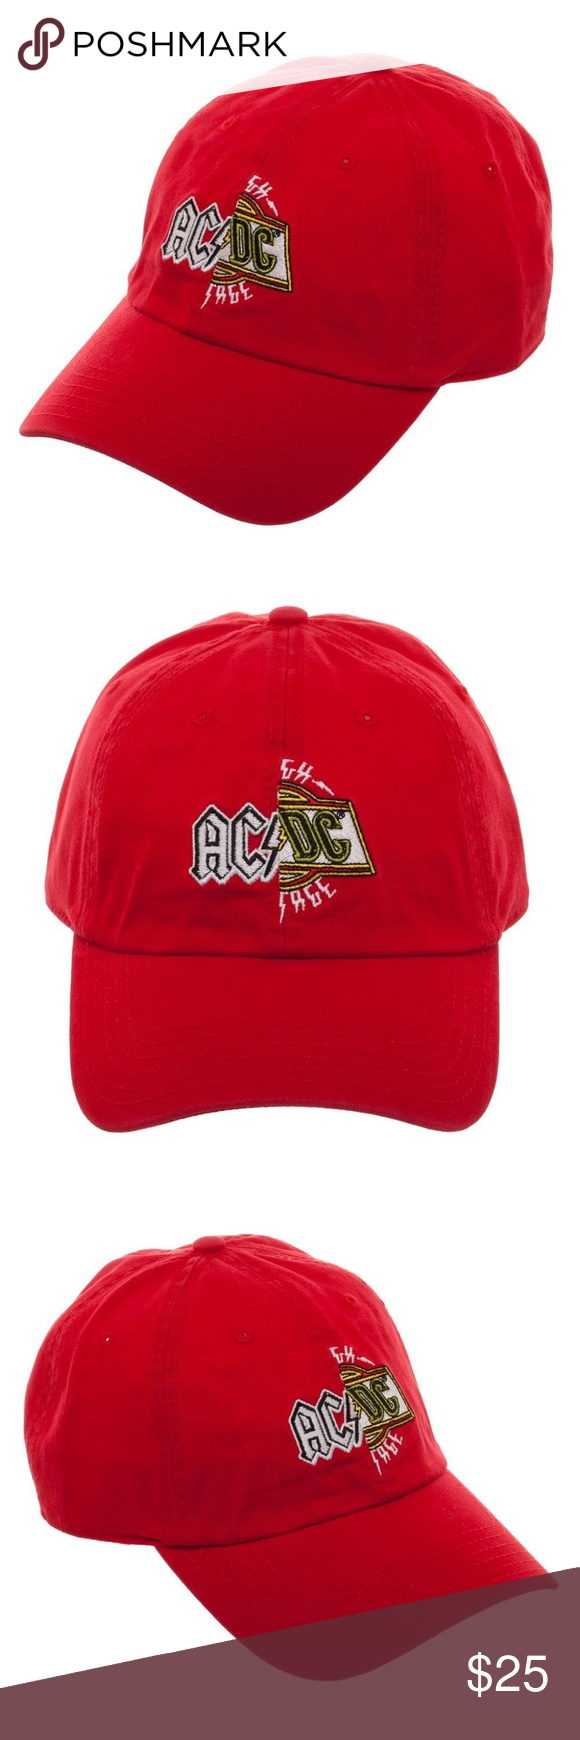 a0a437c58a1 ACDC Band Split Logo Dad Style Hat Cap Red Music This is for 1 ACDC themed